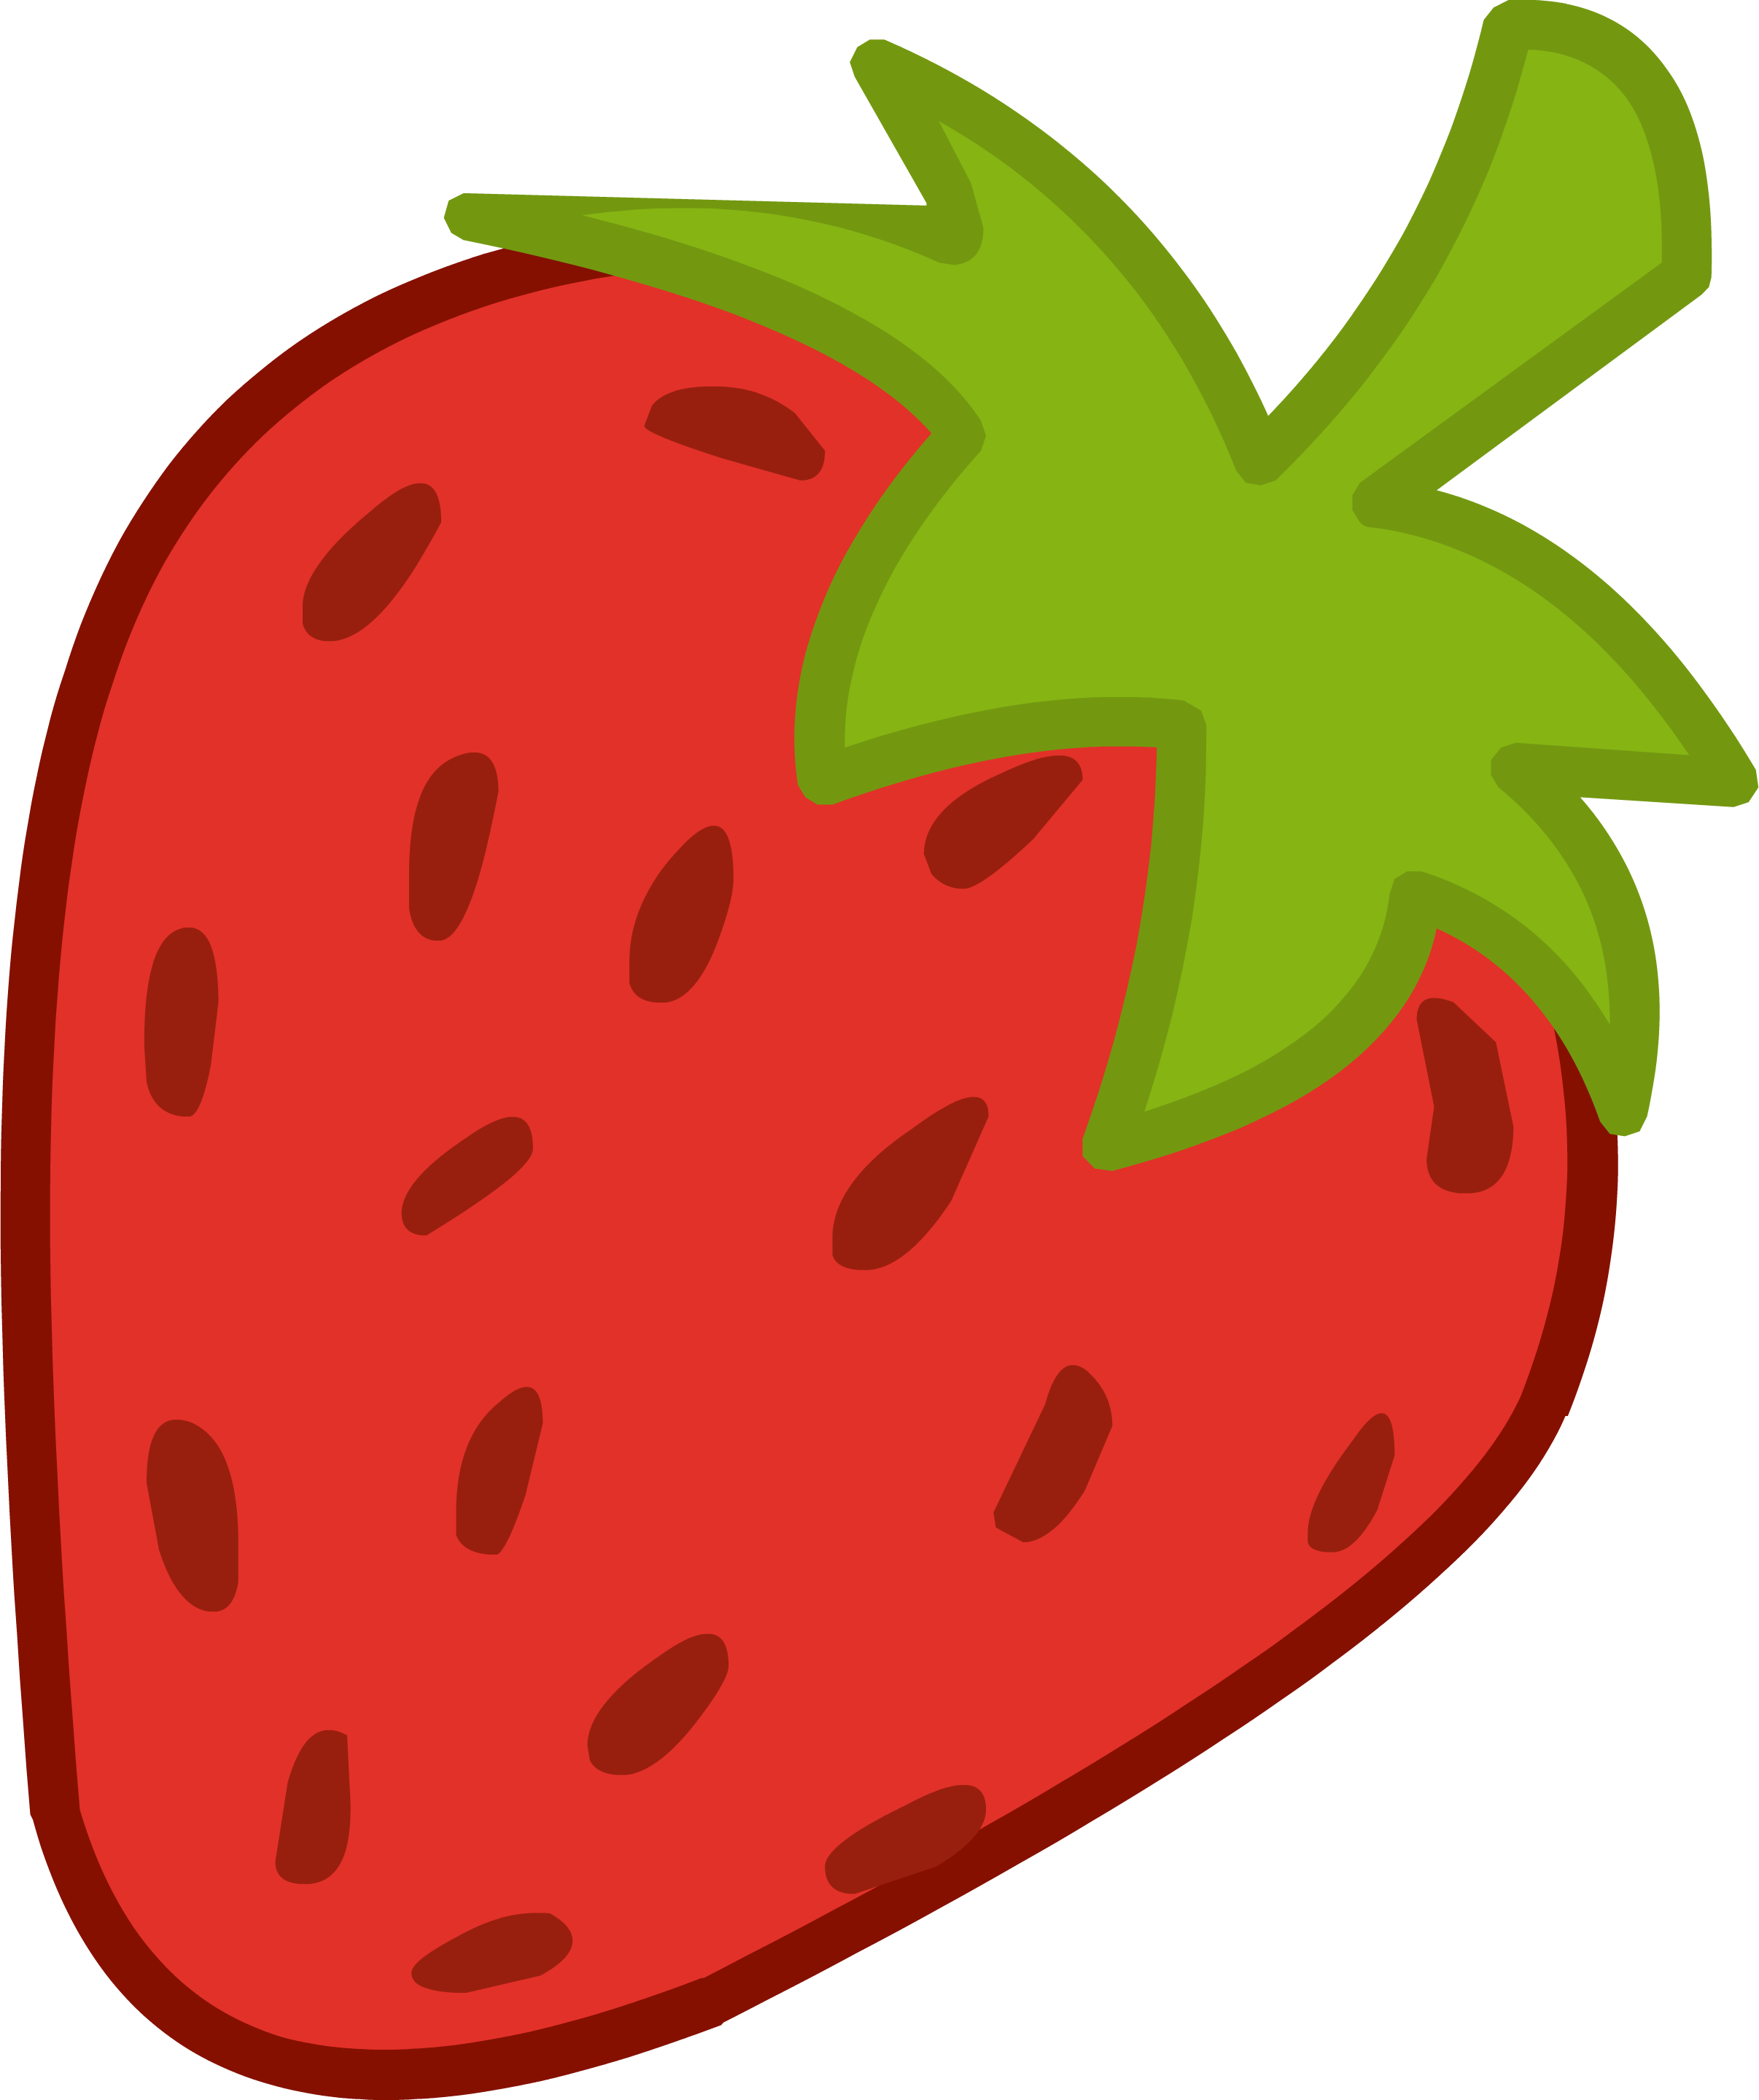 Strawberry clipart 2.